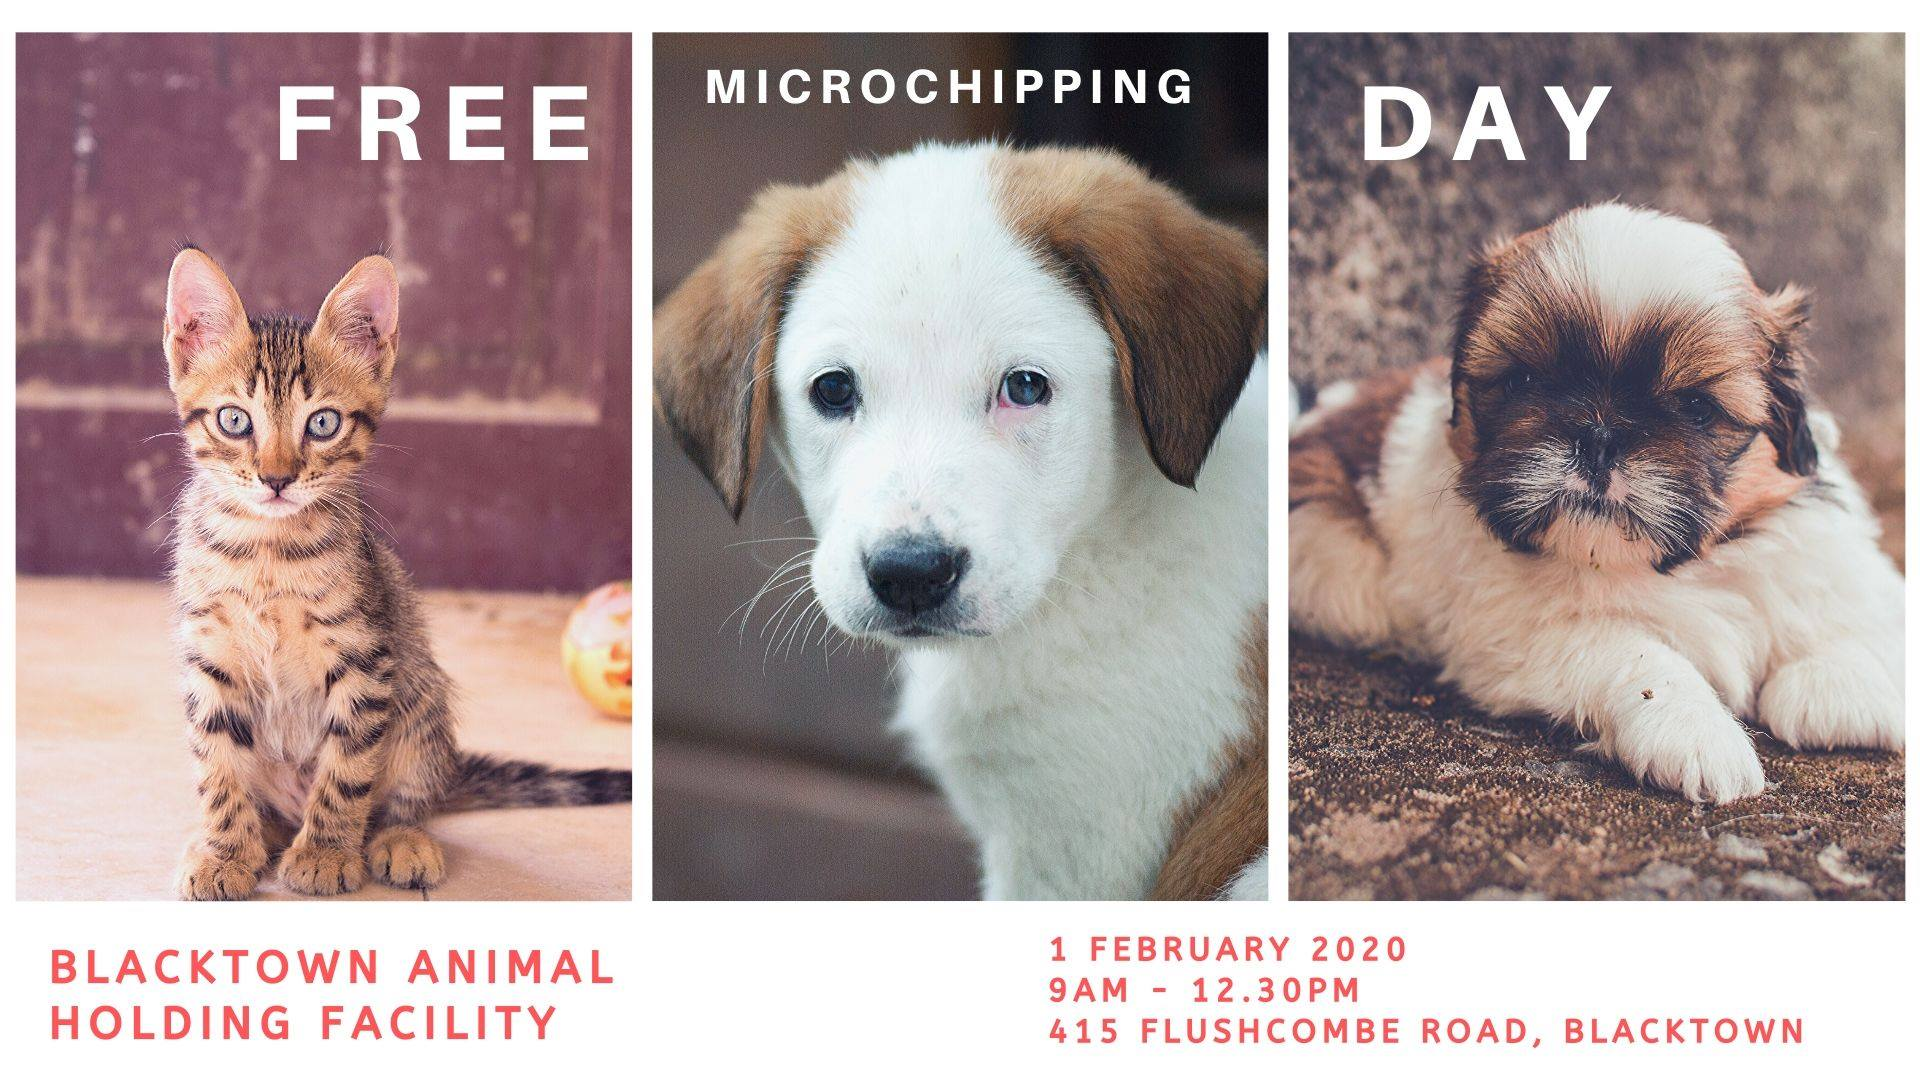 Petcationz Free Microchipping Day Blacktown NSW Australia